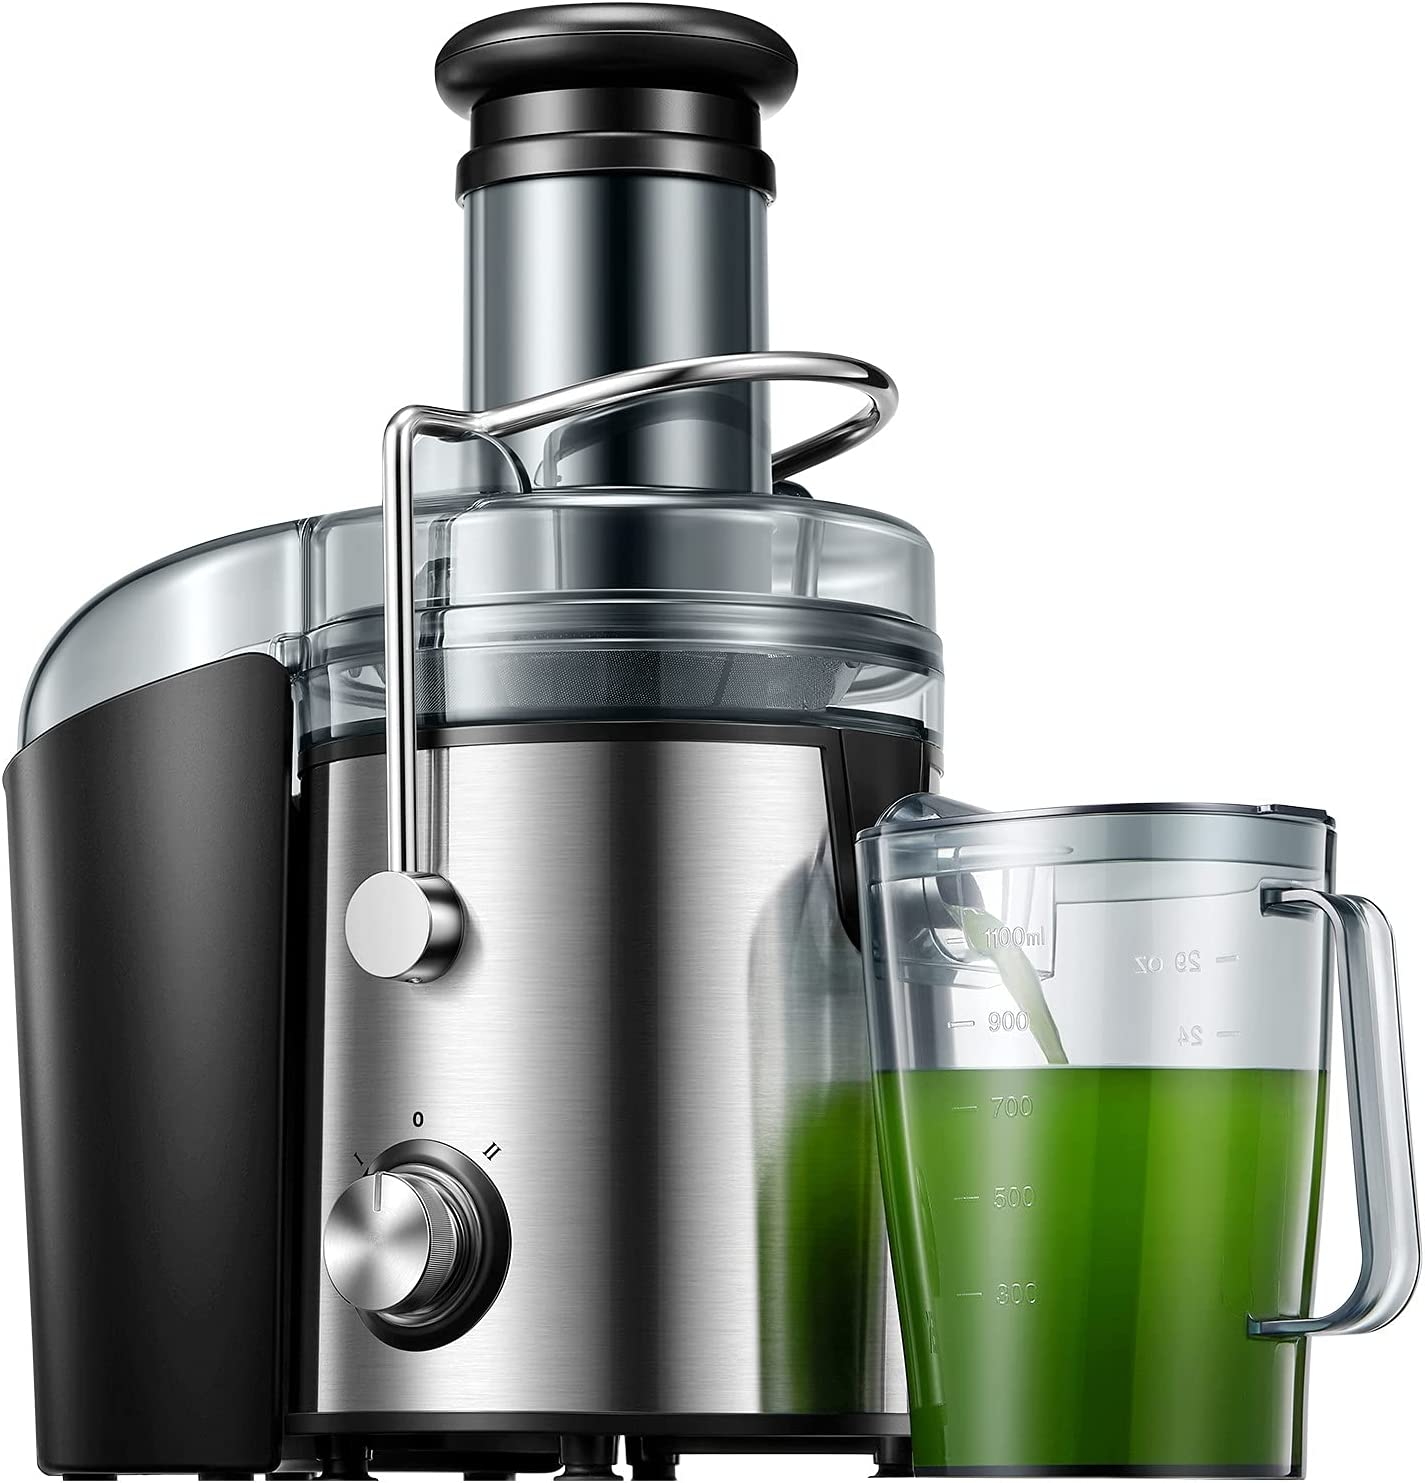 Juicer, 1000W Juicer Machine Whole Fruit and Vegetables Easy to Clean, Dual Speed Juicer Extractor with Higher Juice and Nutrition Yield, Anti-Drip Function, Stainless Steel, Silver